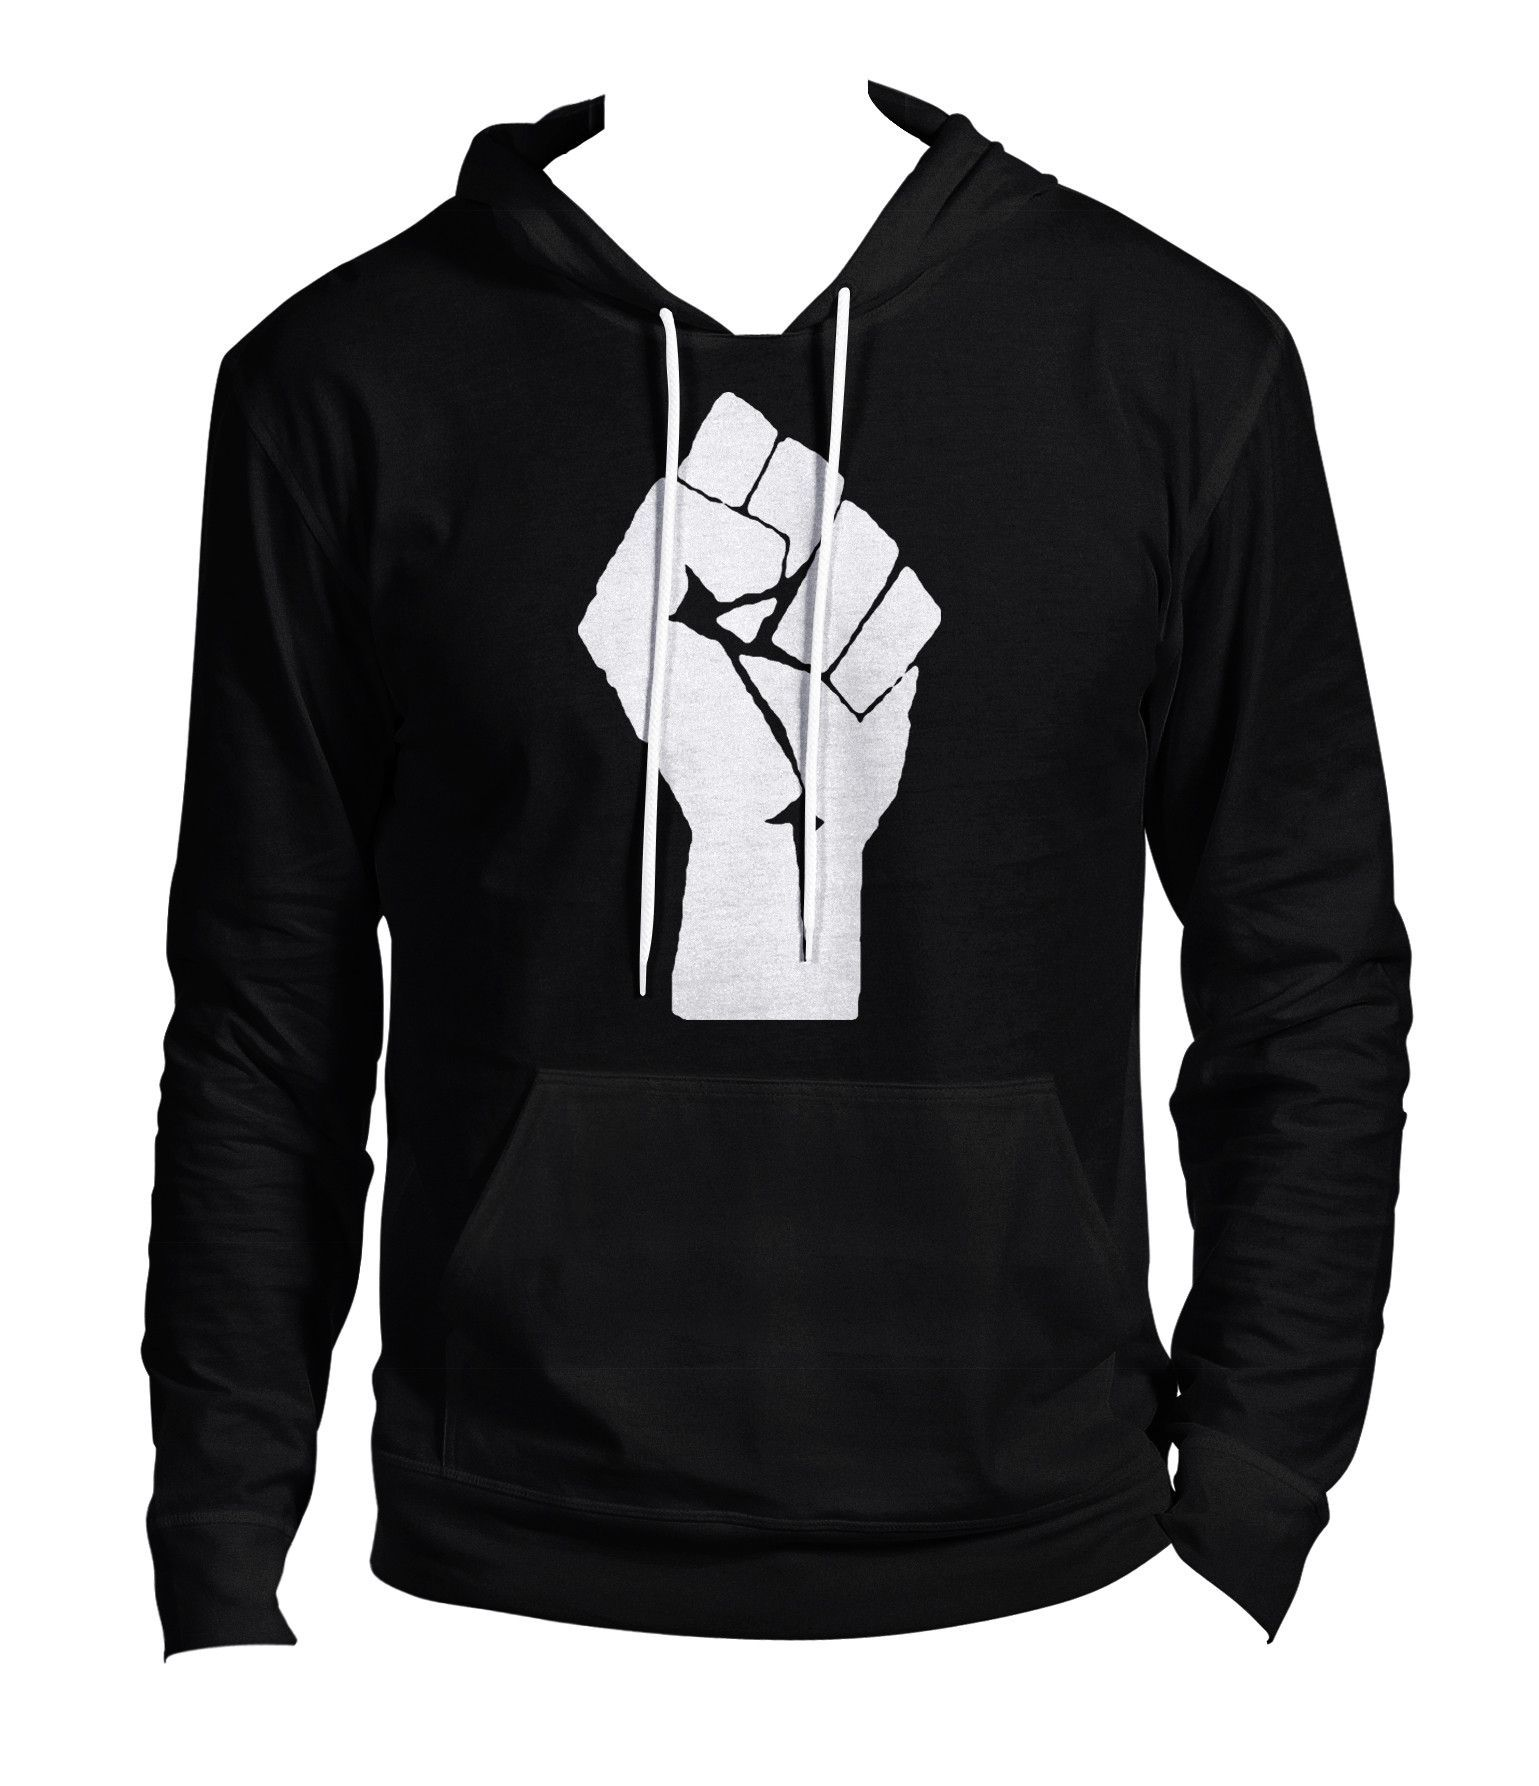 d299c660c5 Black Power Fist Hoodie | AFRO-QUO! | Black, Black power, Hoodies